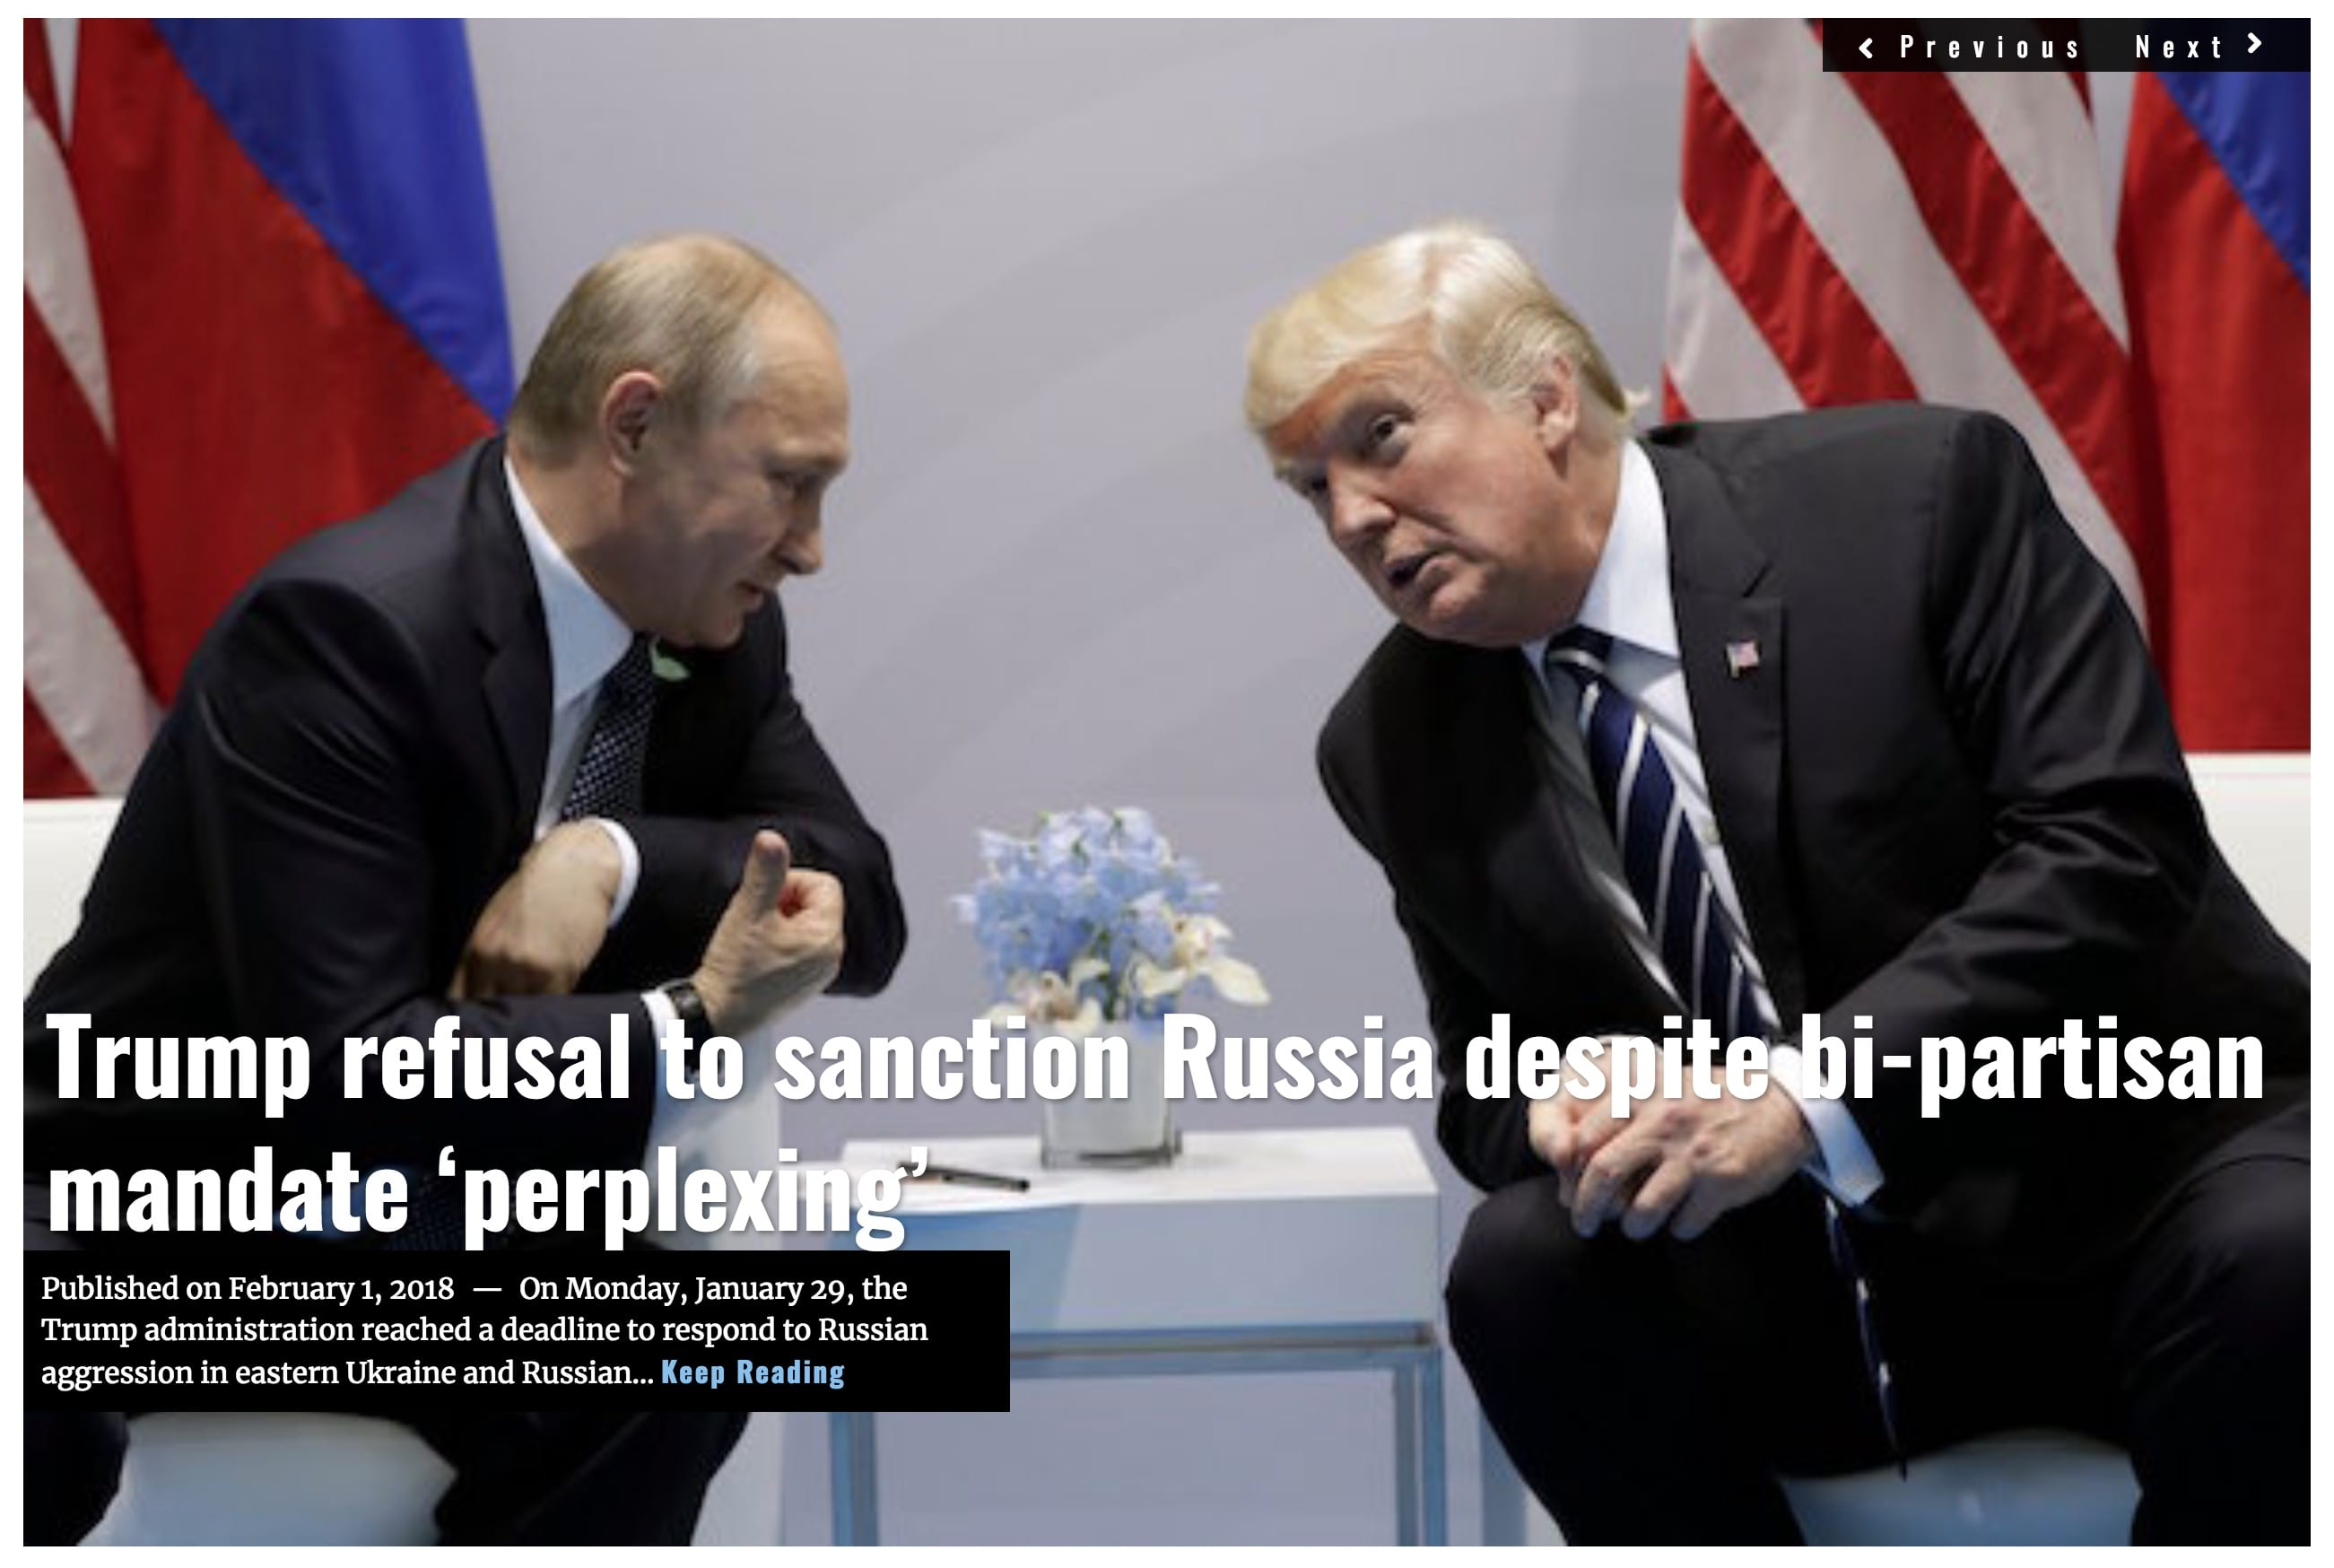 Image Lima Charlie News Headline Trump Russia sanctions FEB 1 2018